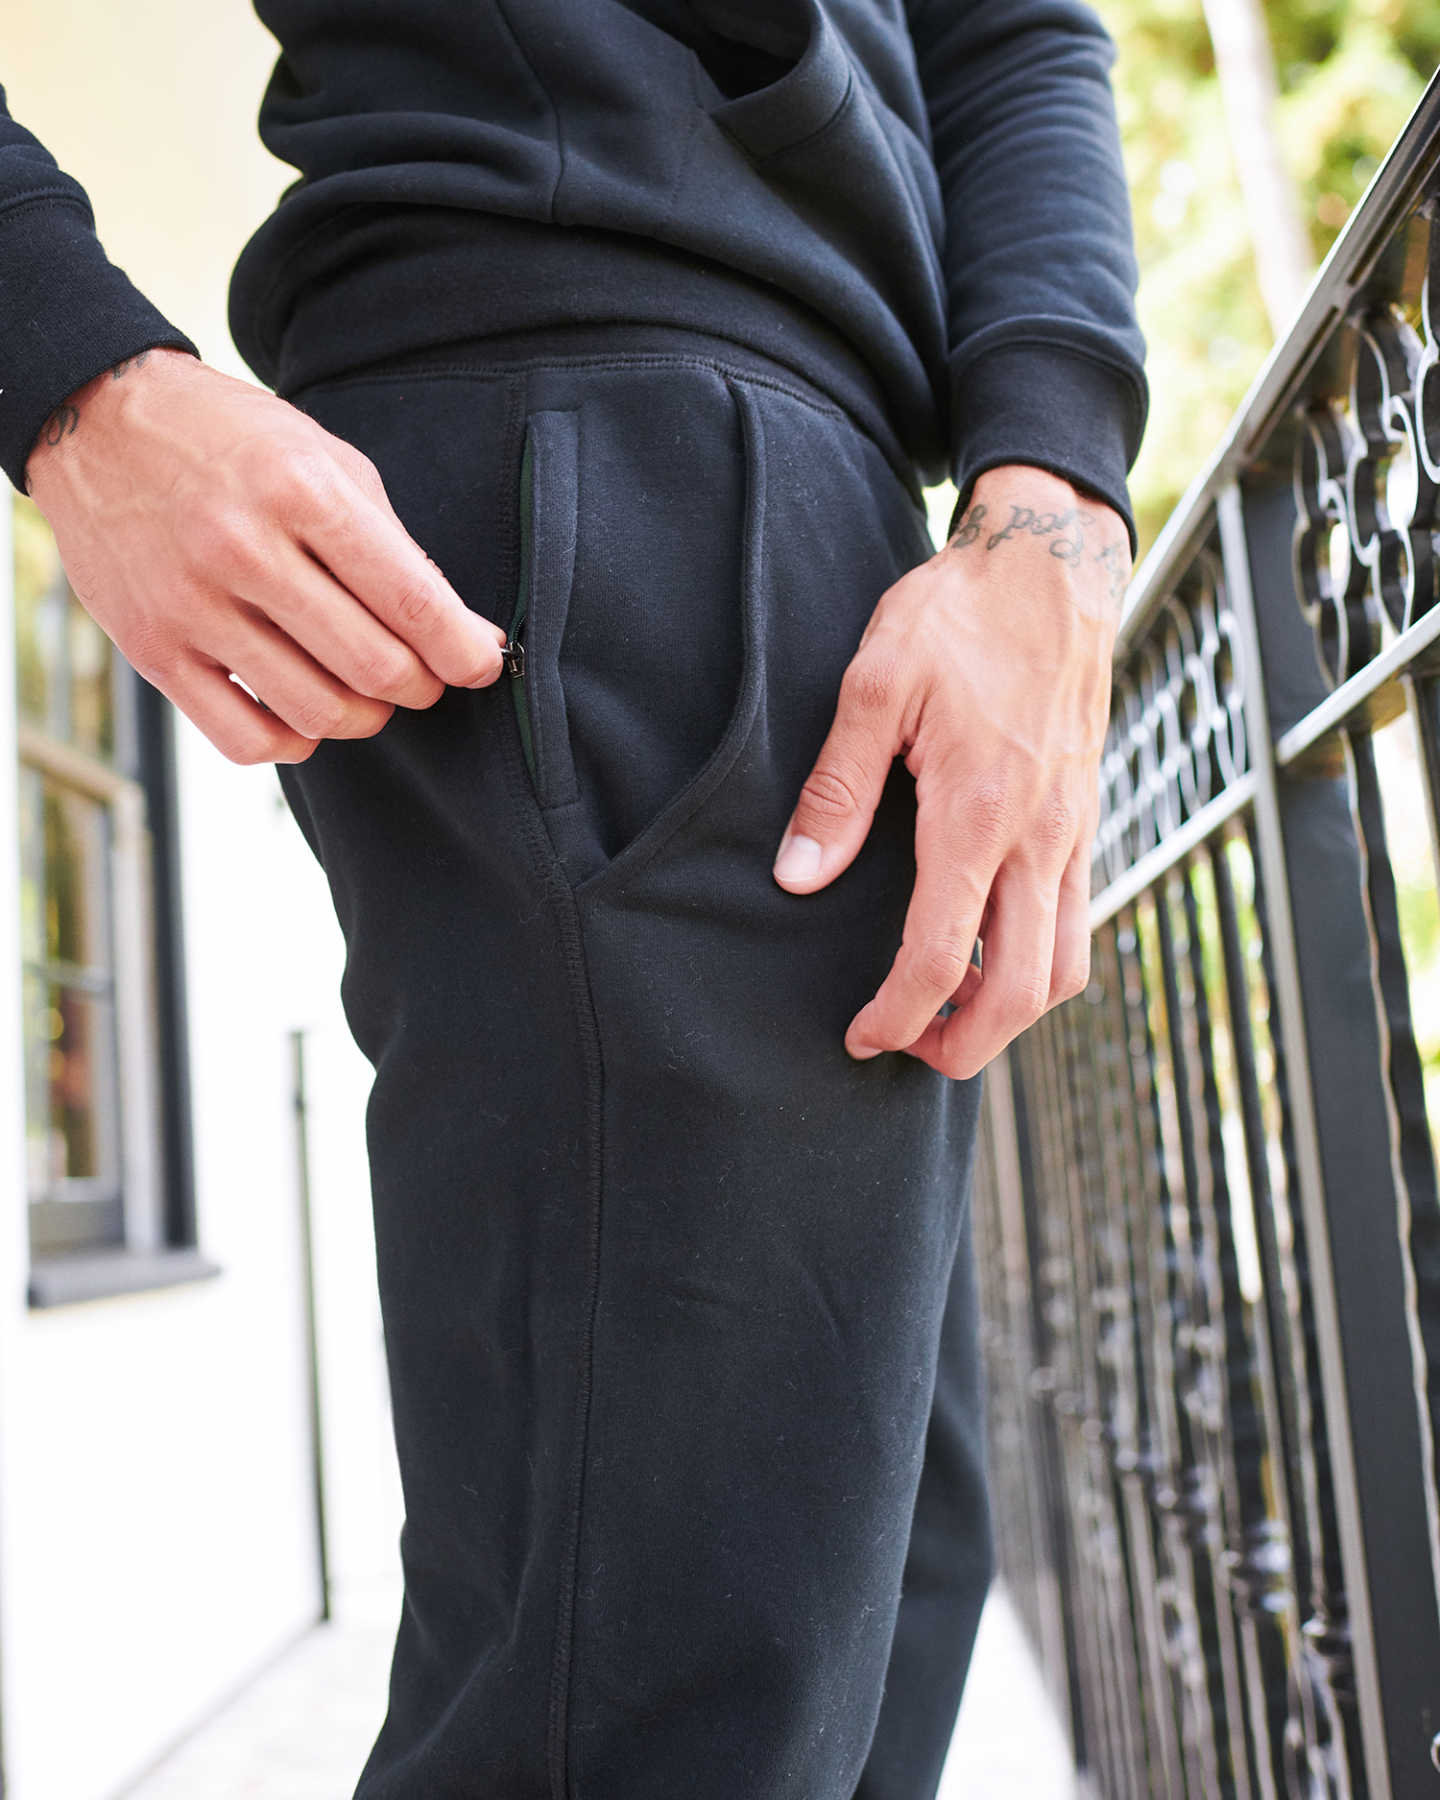 Man wearing 100% organic cotton heavyweight sweatpants in black zoomed in